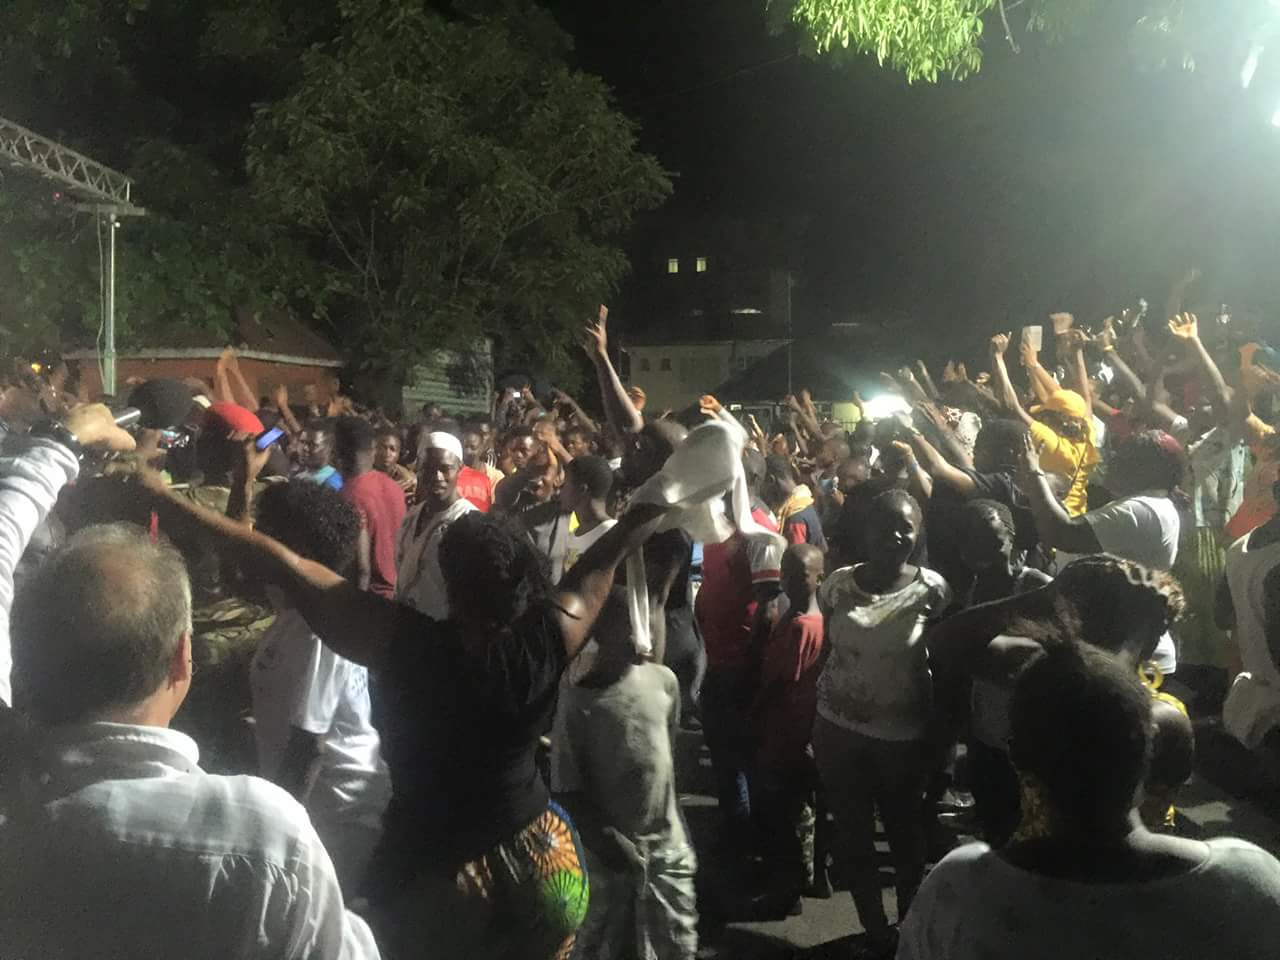 Sierra Leoneans celebrate at the declaration that ther country is now Ebola free (Photo, Umaru Fofana)